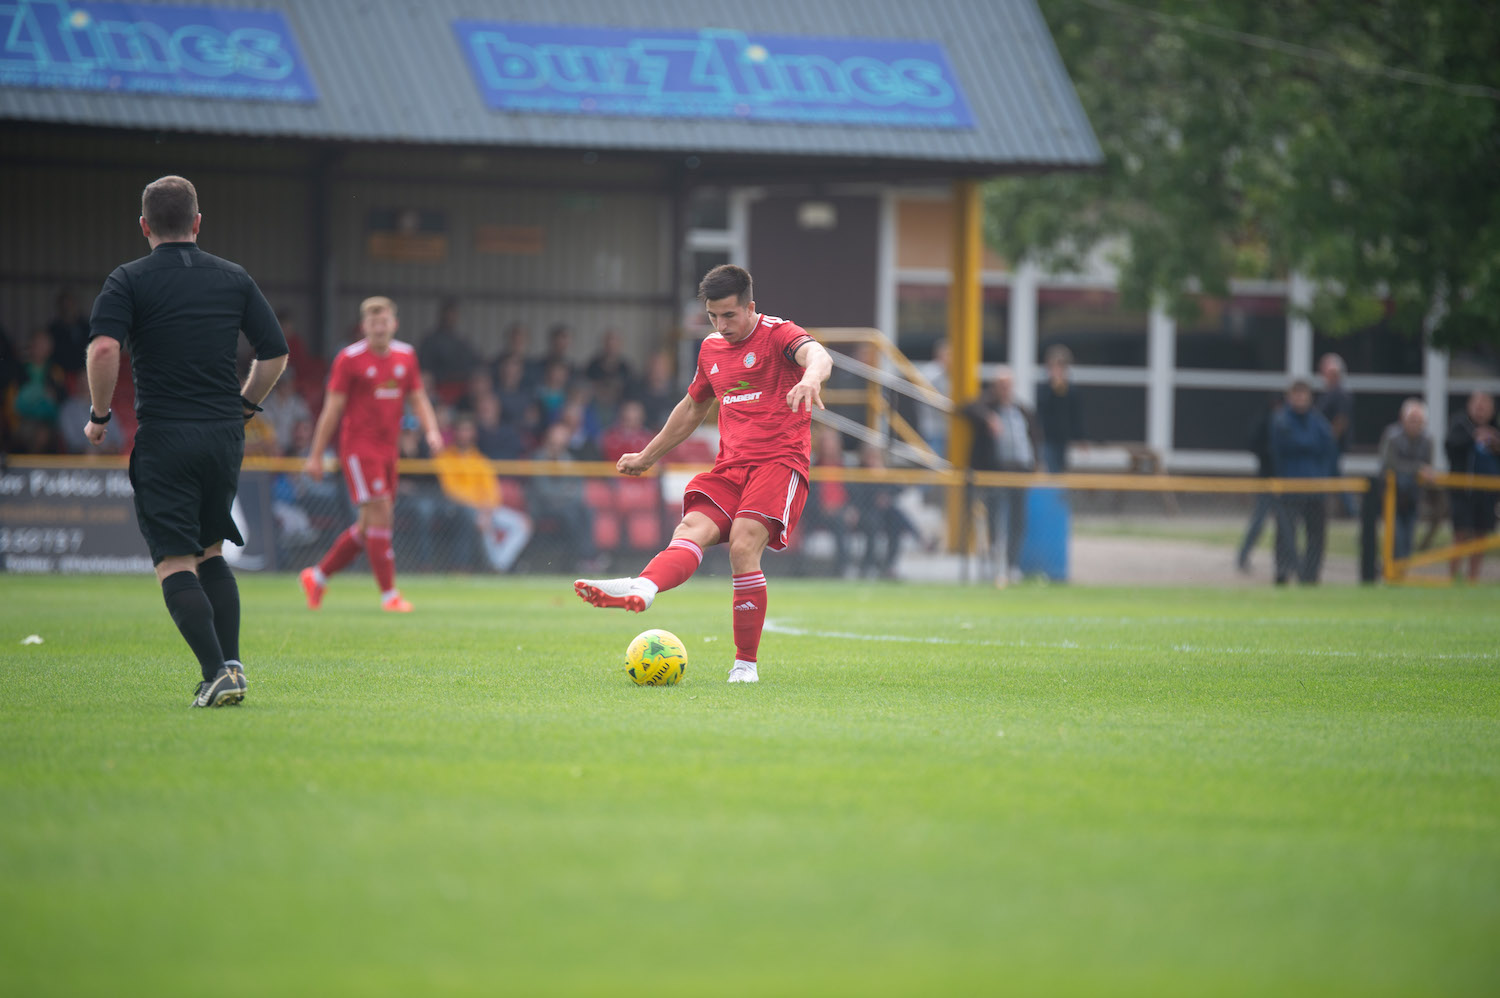 Read the full article - Reds travel to Moatside for second game in four days